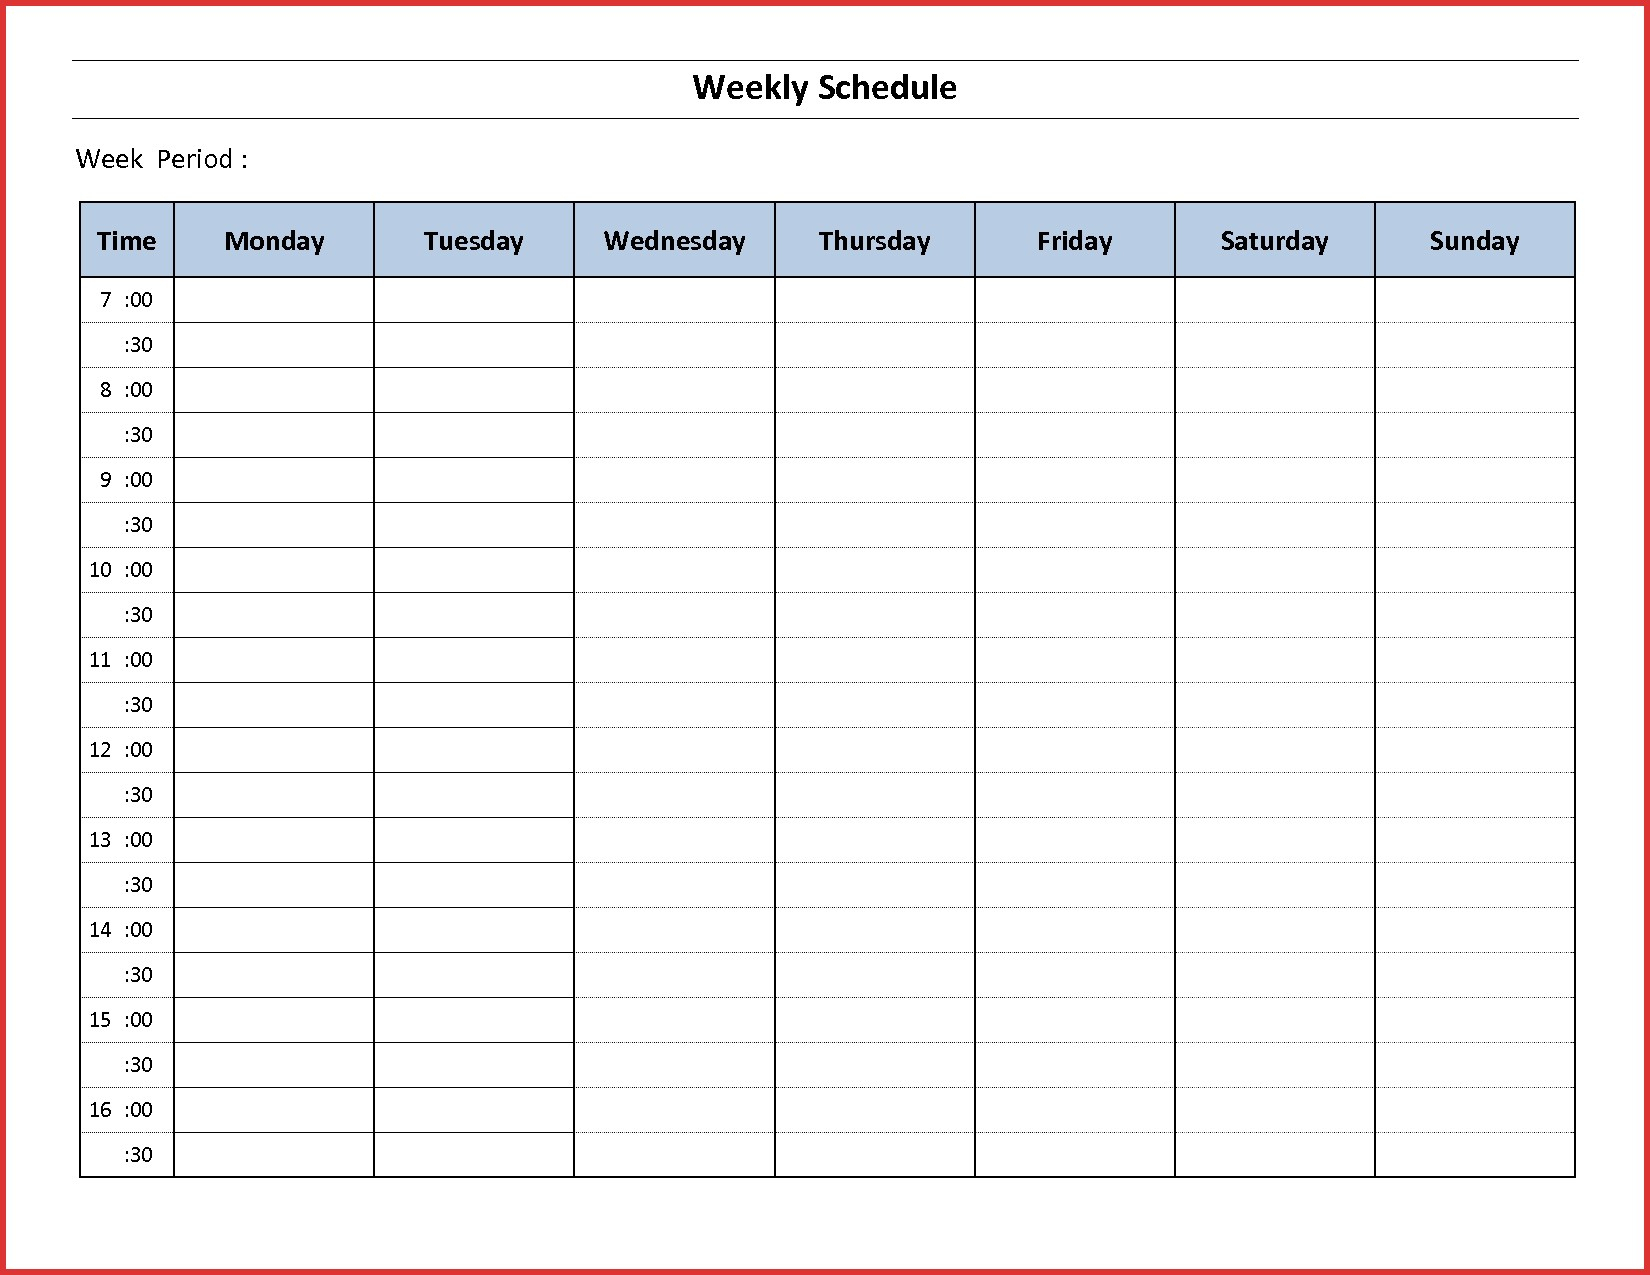 017 Template Ideas Weekly Hourly Schedule Hour Excel within Hourly Weekly Schedule Pdf